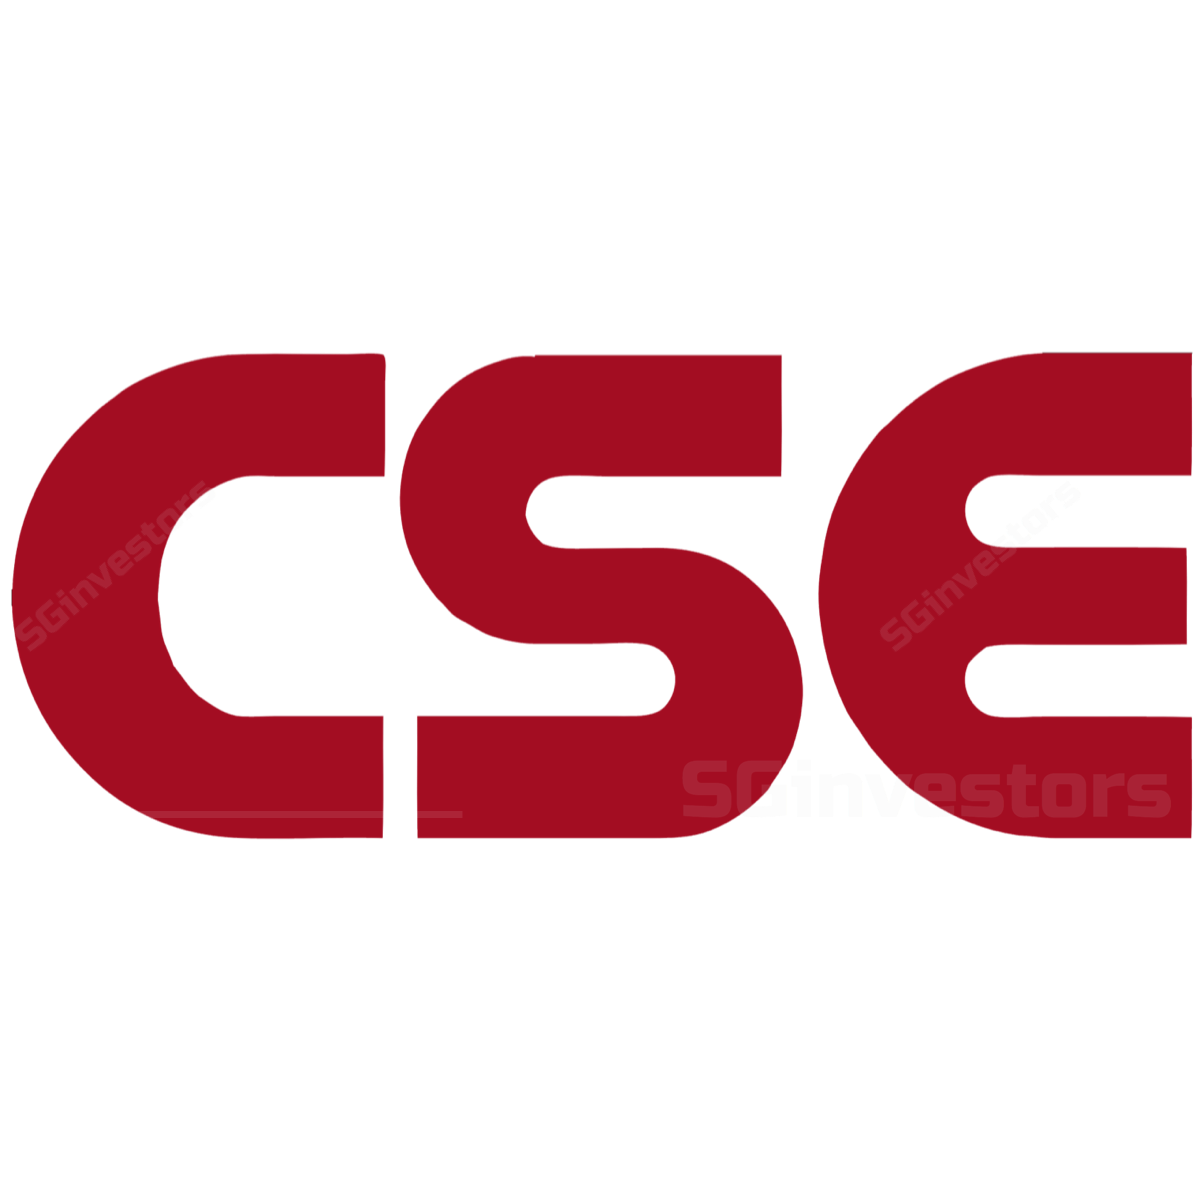 CSE Global - OCBC Investment 2017-08-11: Cease Coverage